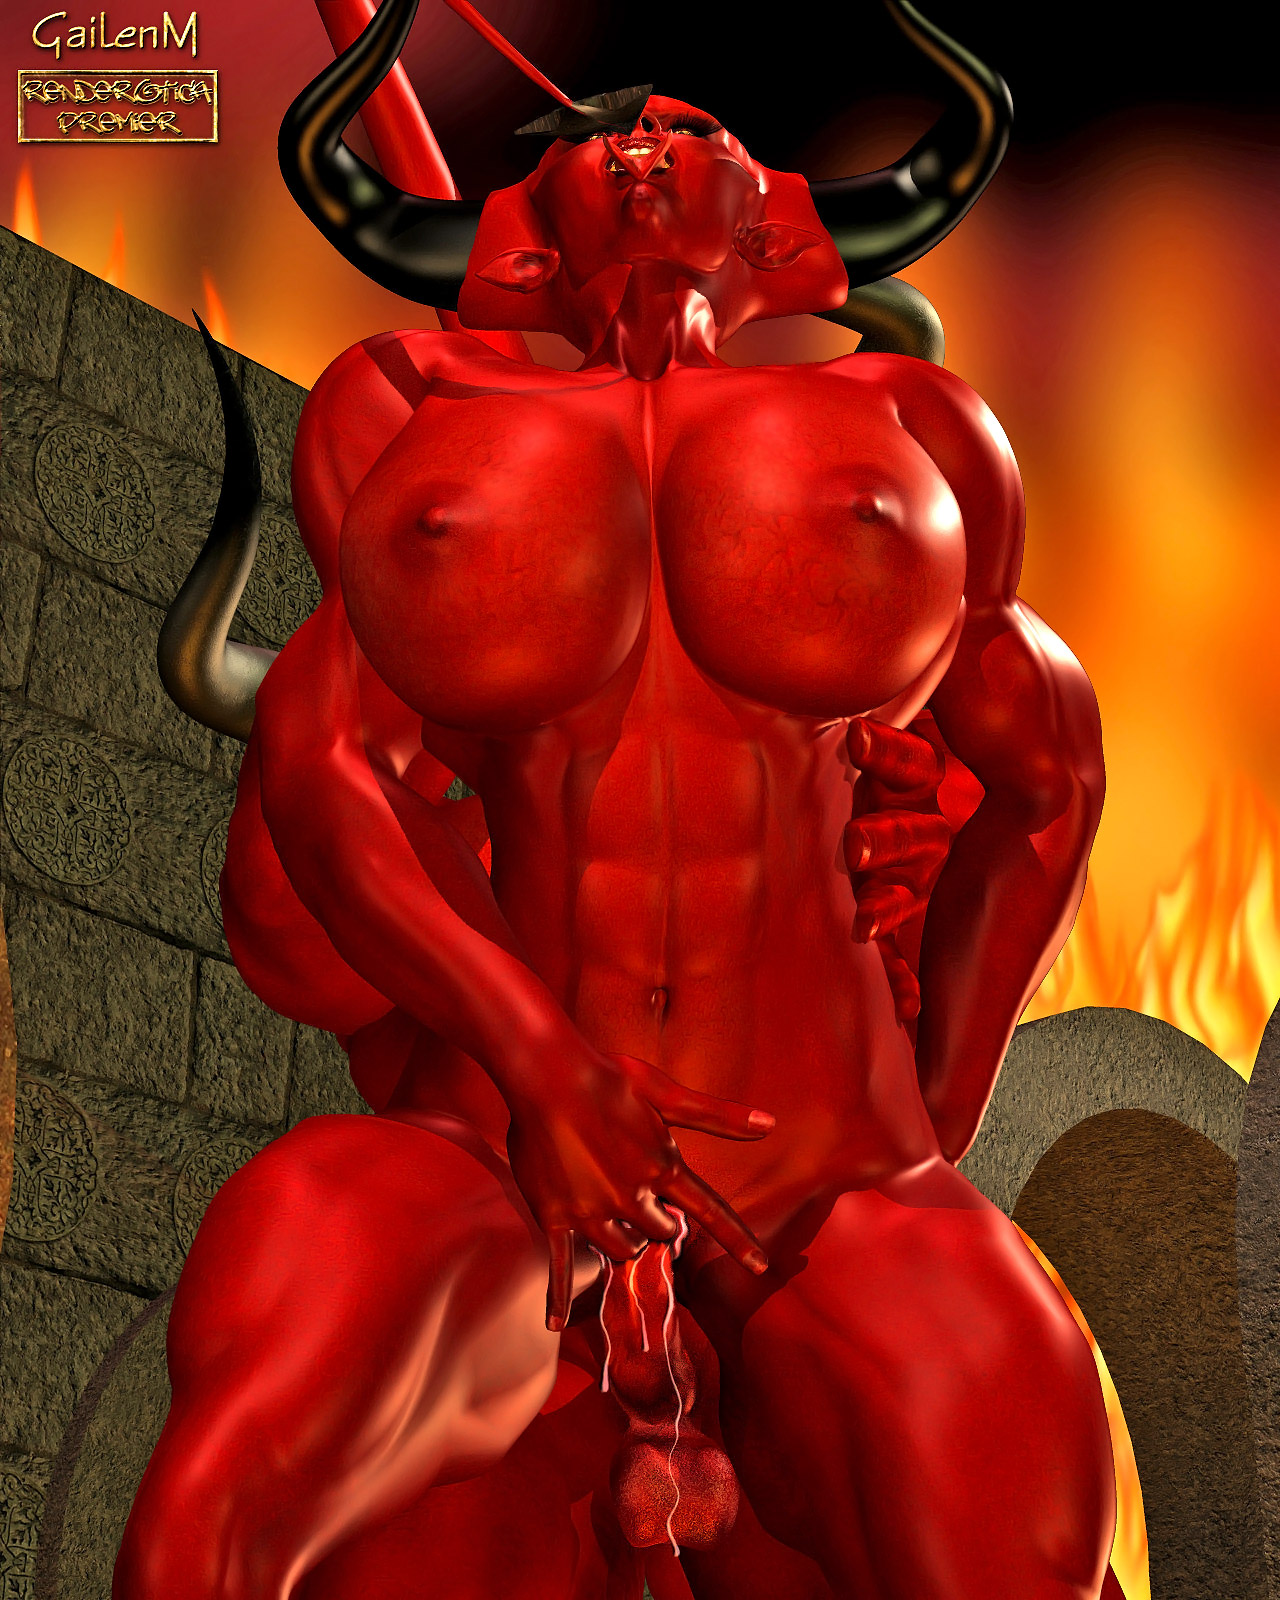 Demon fucking woman art hentai streaming